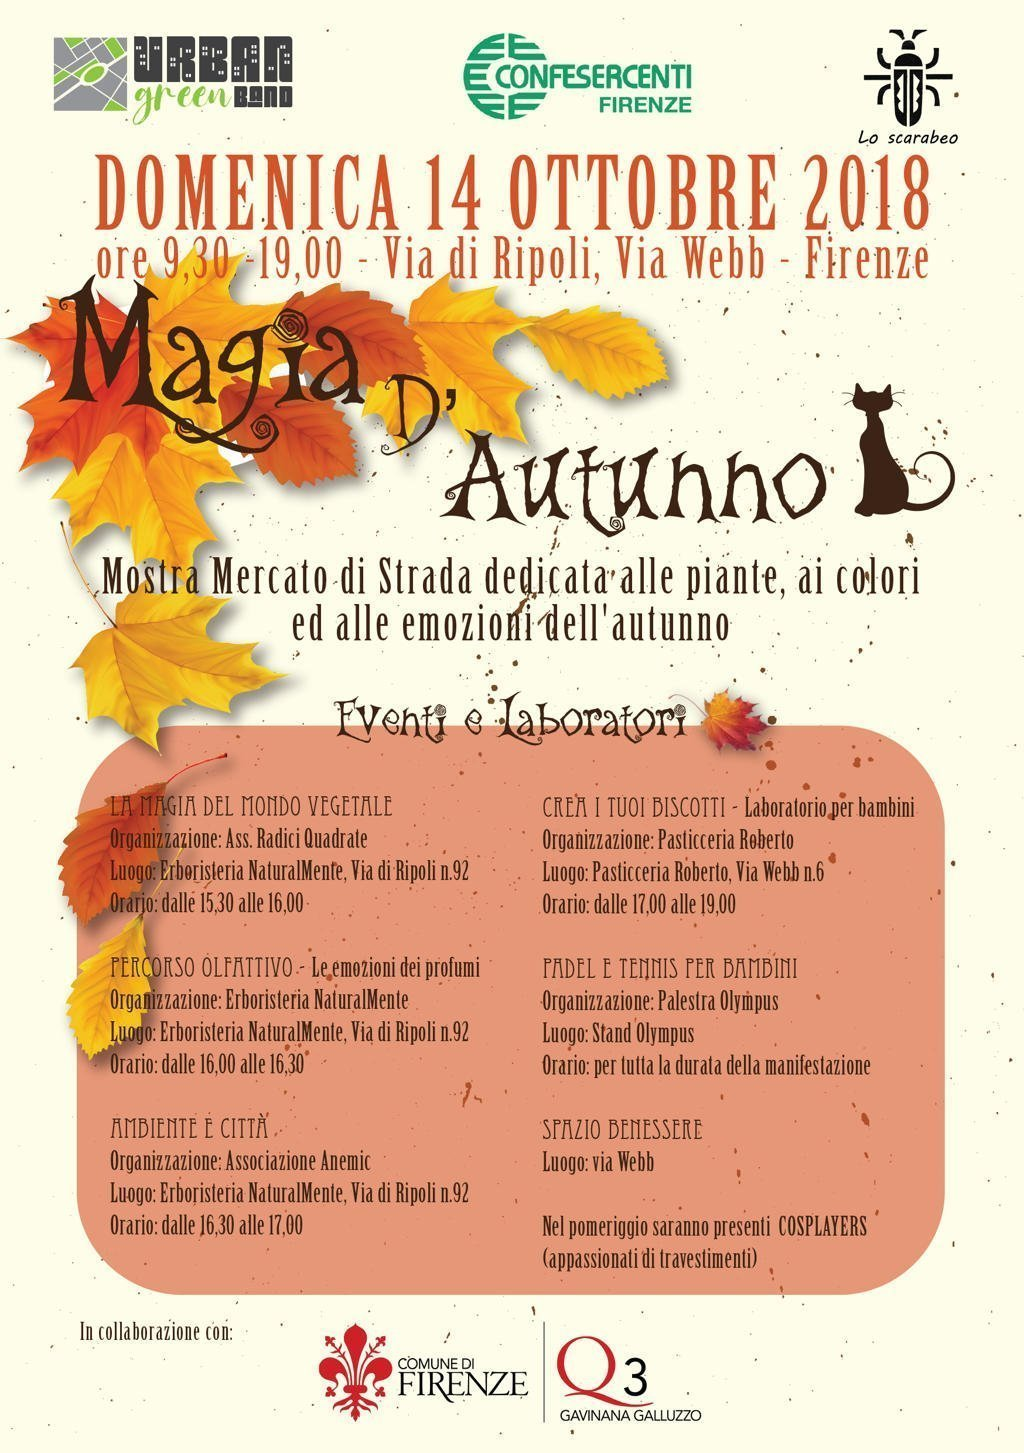 Magia d'autunno 2018 - Firenze